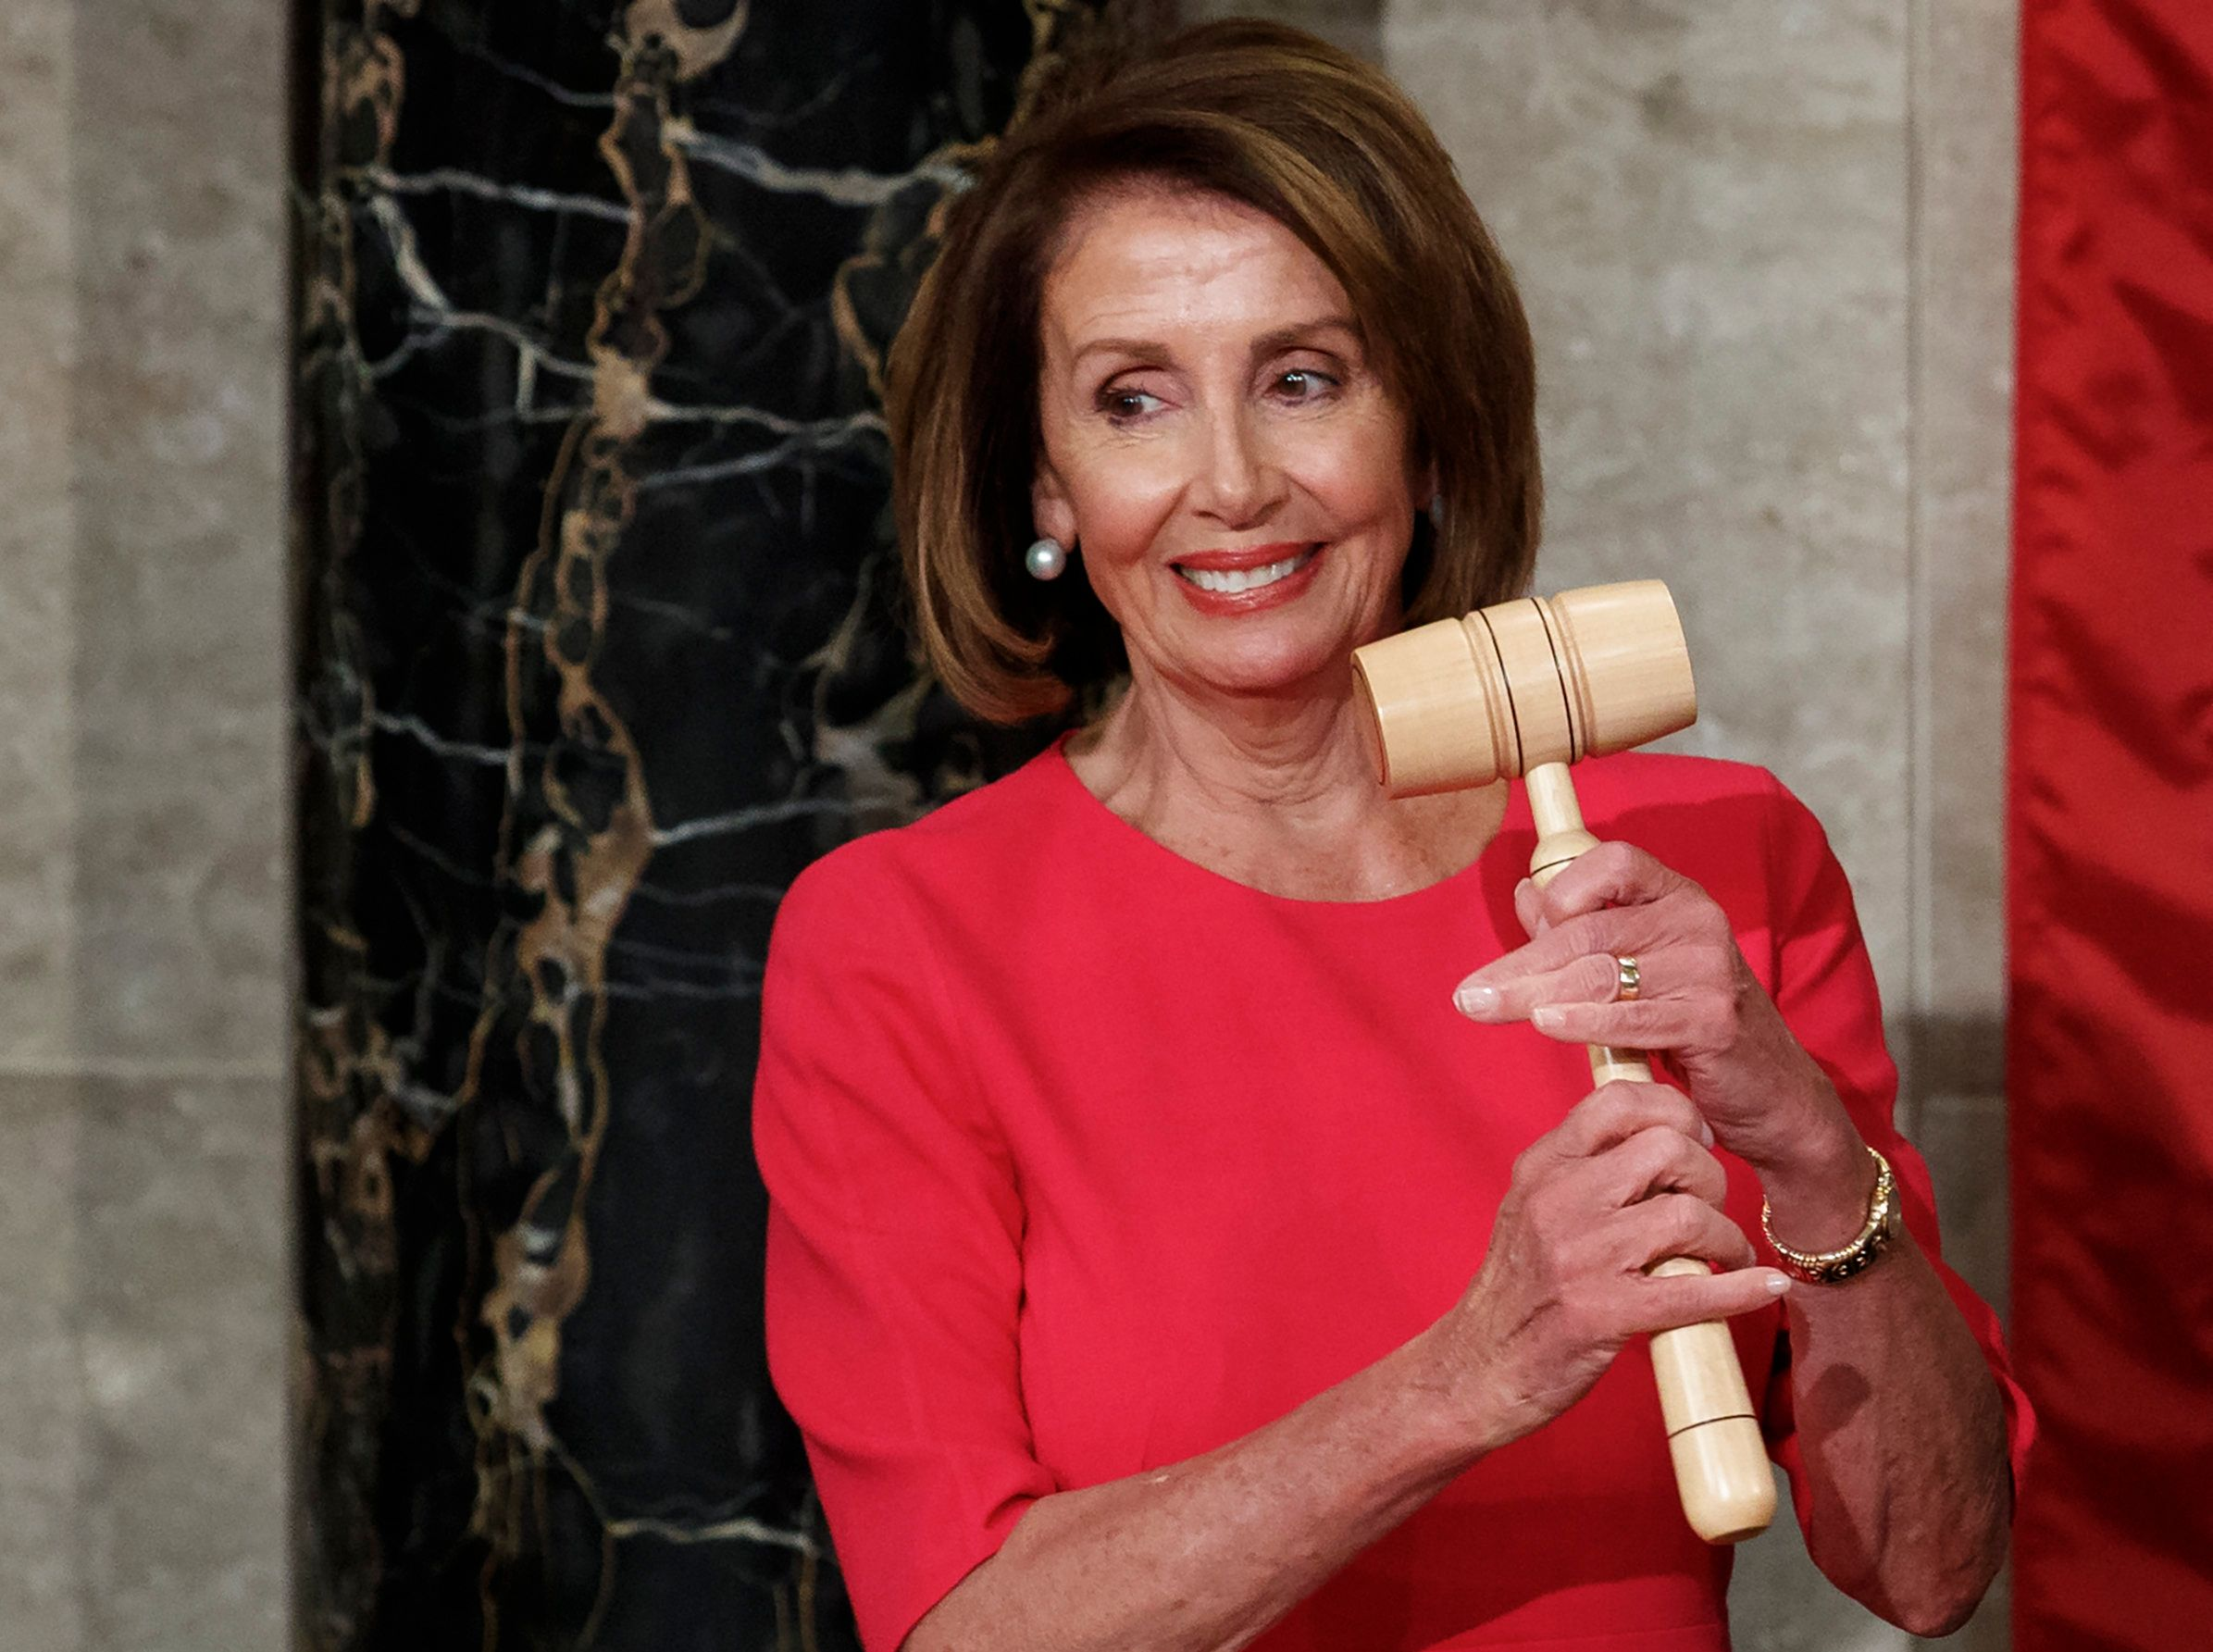 One of Nancy Pelosi's first orders of business as House speaker is inviting Trump to give a State of the Union address.